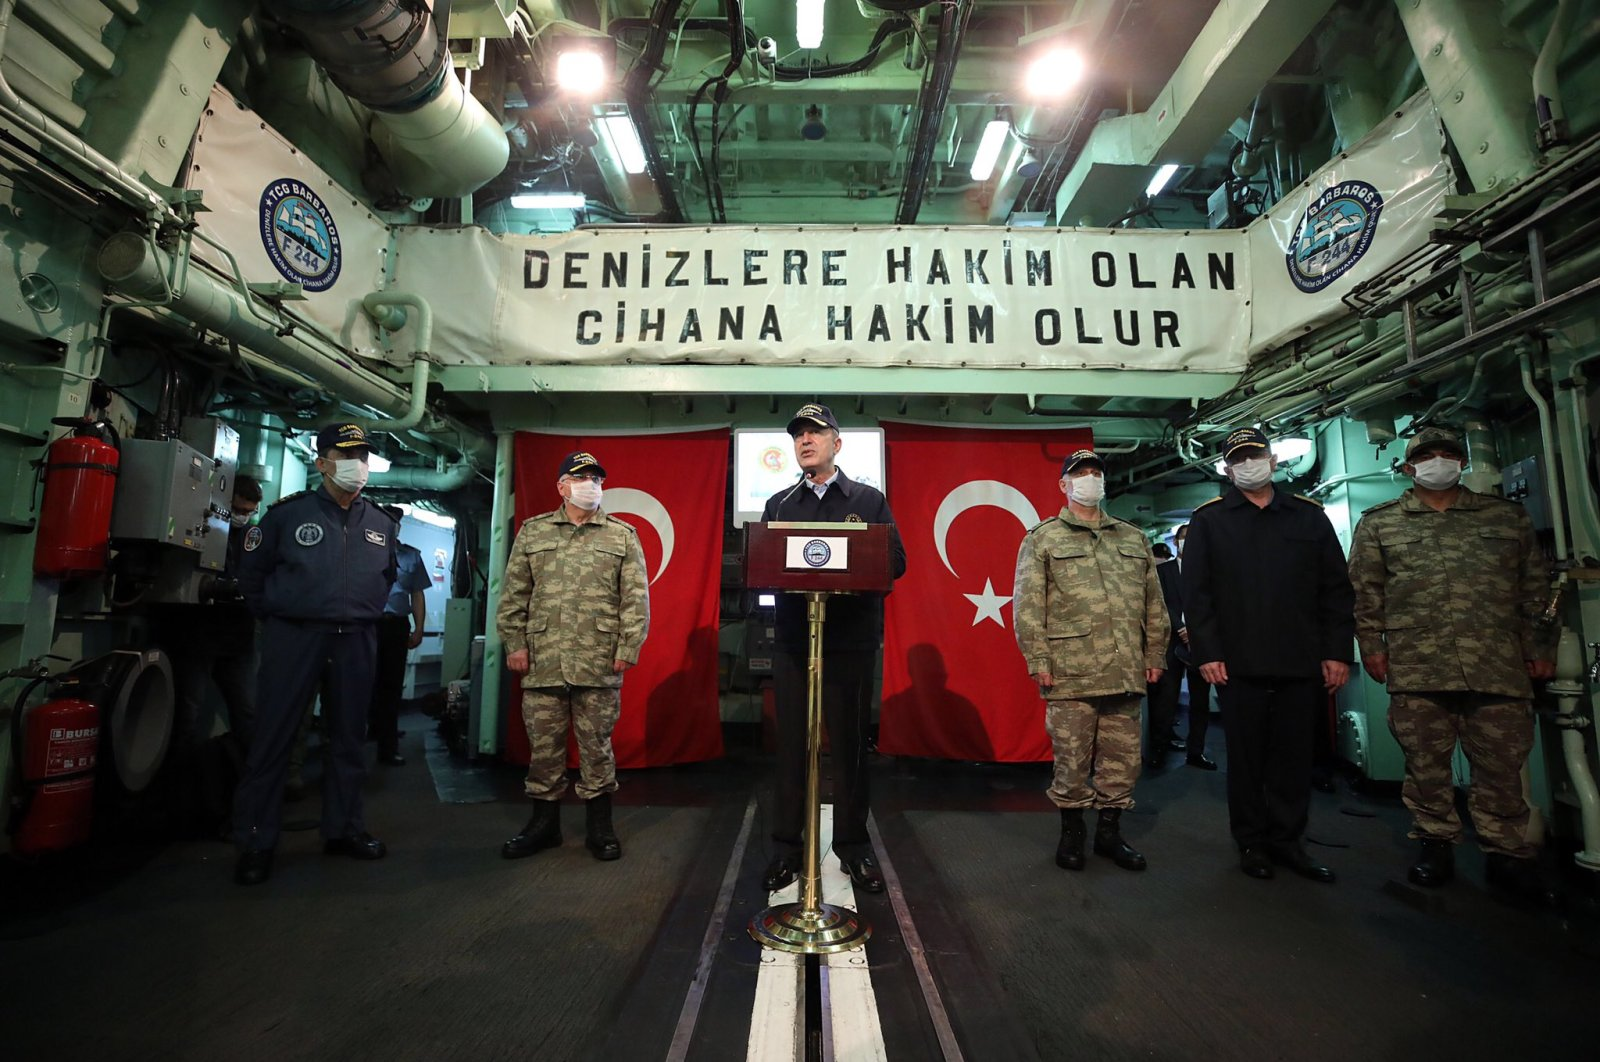 """National Defense Minister Hulusi Akar during a speech aboard TCG Barbaros vessel on May 24, 2020 with the slogan on the background reading """"One who dominates the seas, dominates the world"""" (DHA Photo)"""